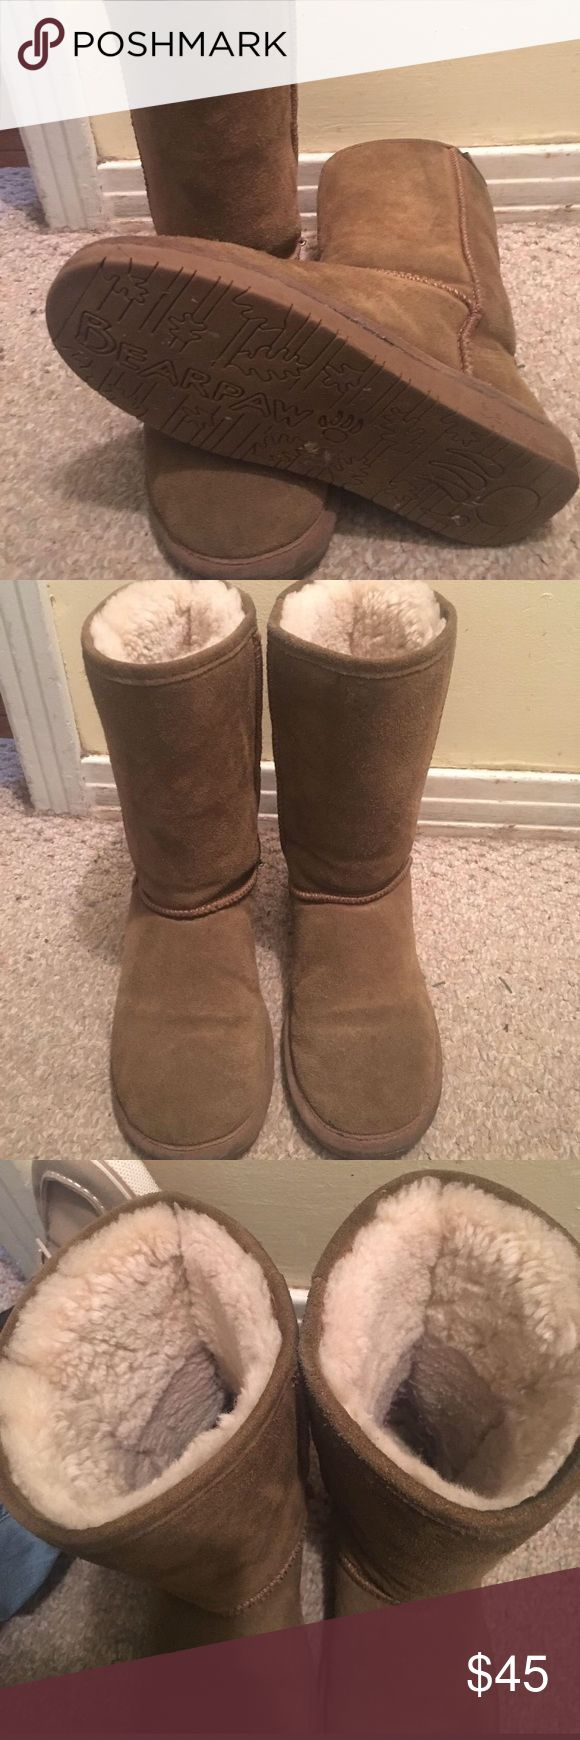 Woman's bearpaw winter boots Size 8 runs small. I usually wear a 7 BearPaw Shoes Winter & Rain Boots